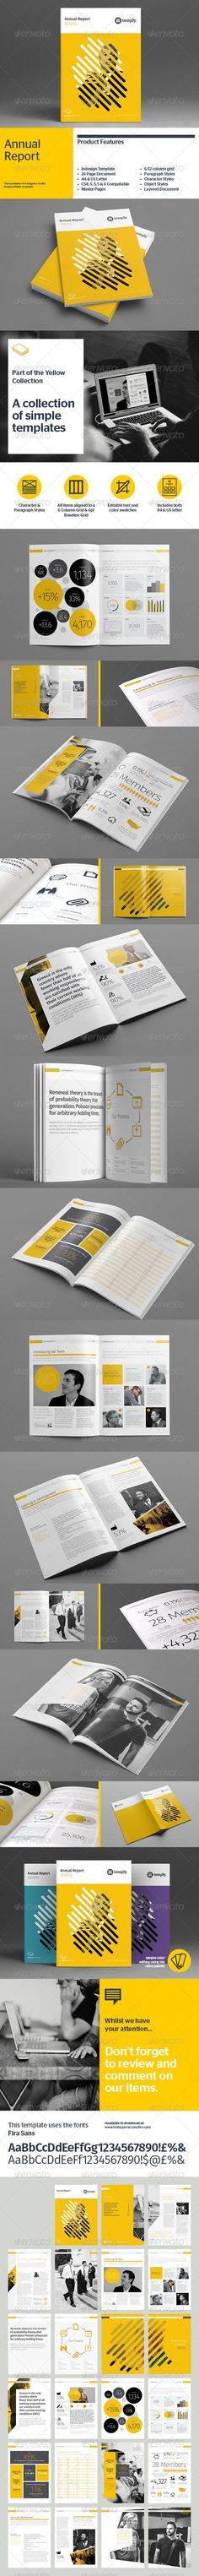 Business Infographic  Business Infographic  Annual Report Design